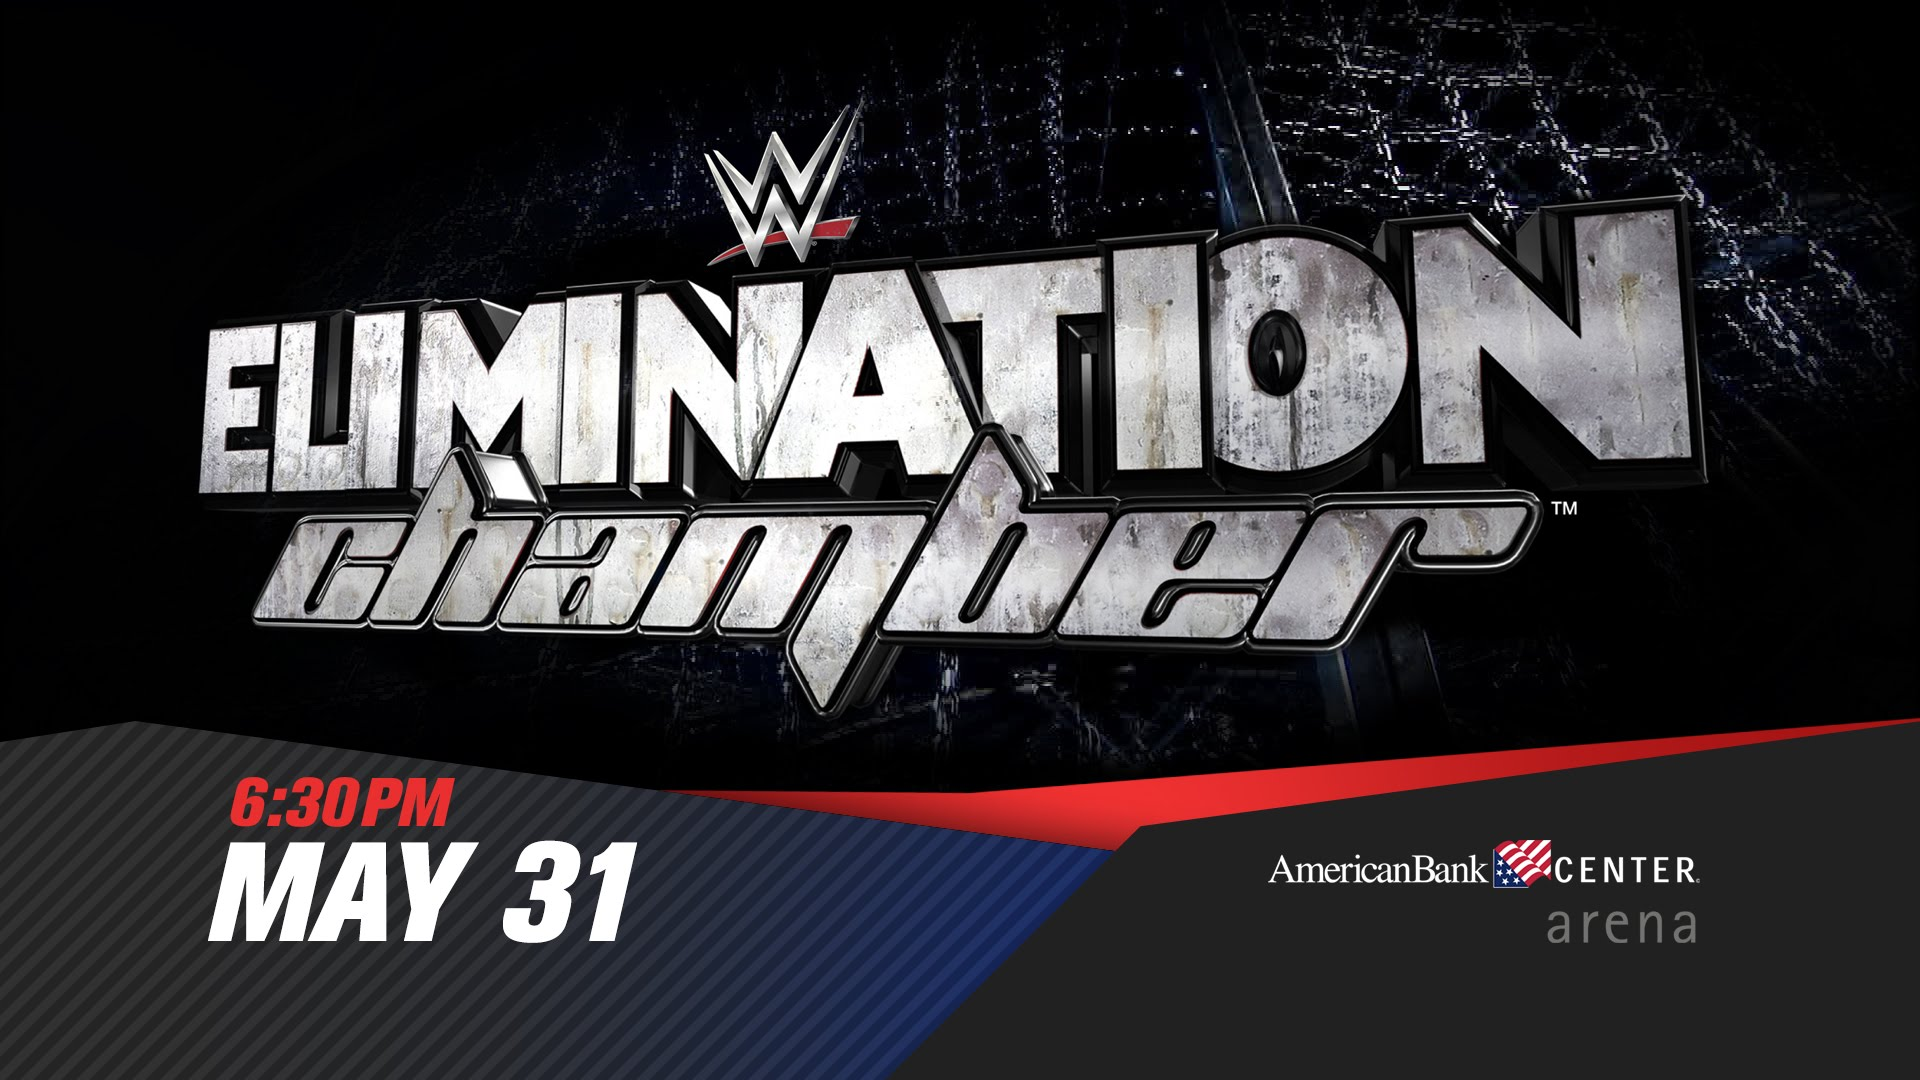 WWE Elimination Chamber   May 31 2015   American Bank 1920x1080